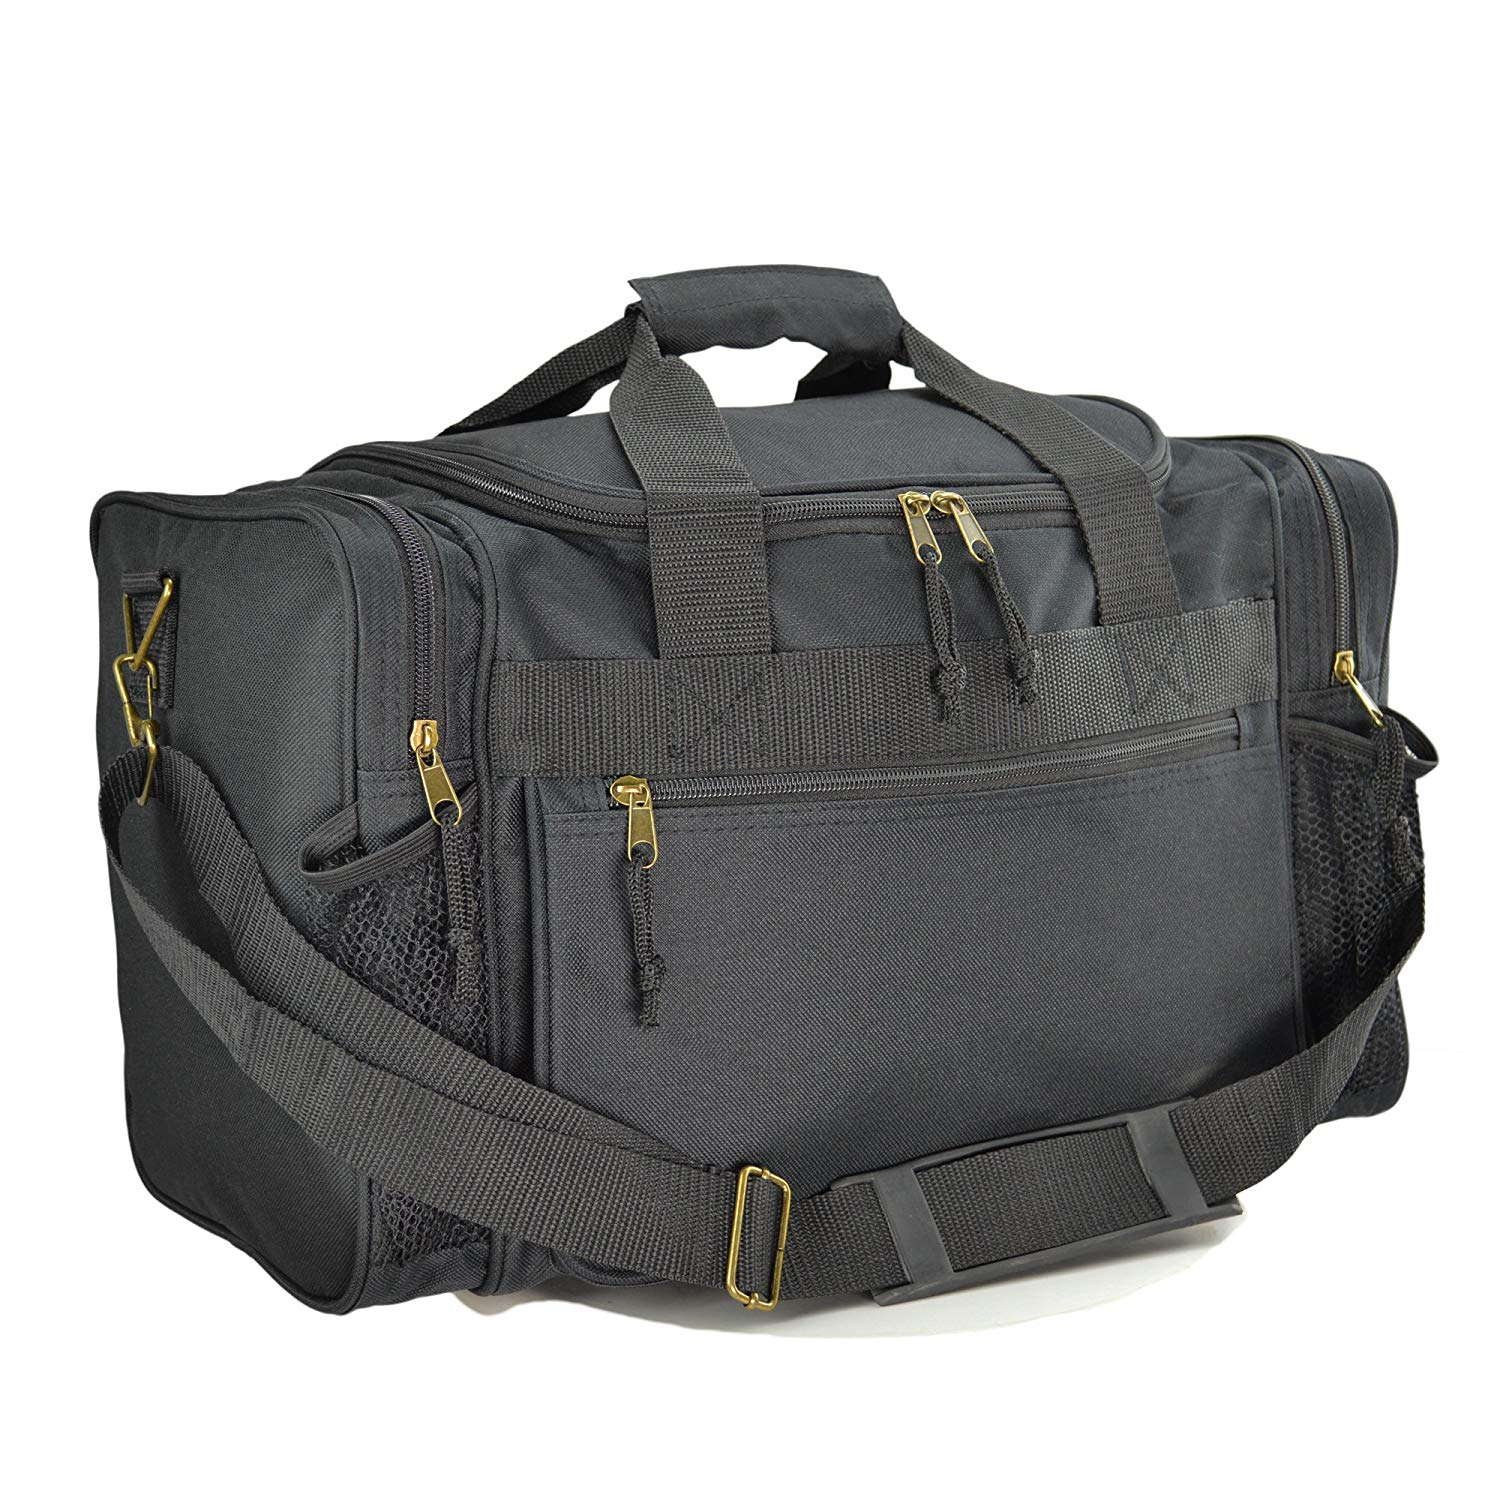 Duffle Bag Dual Front Mesh Pockets